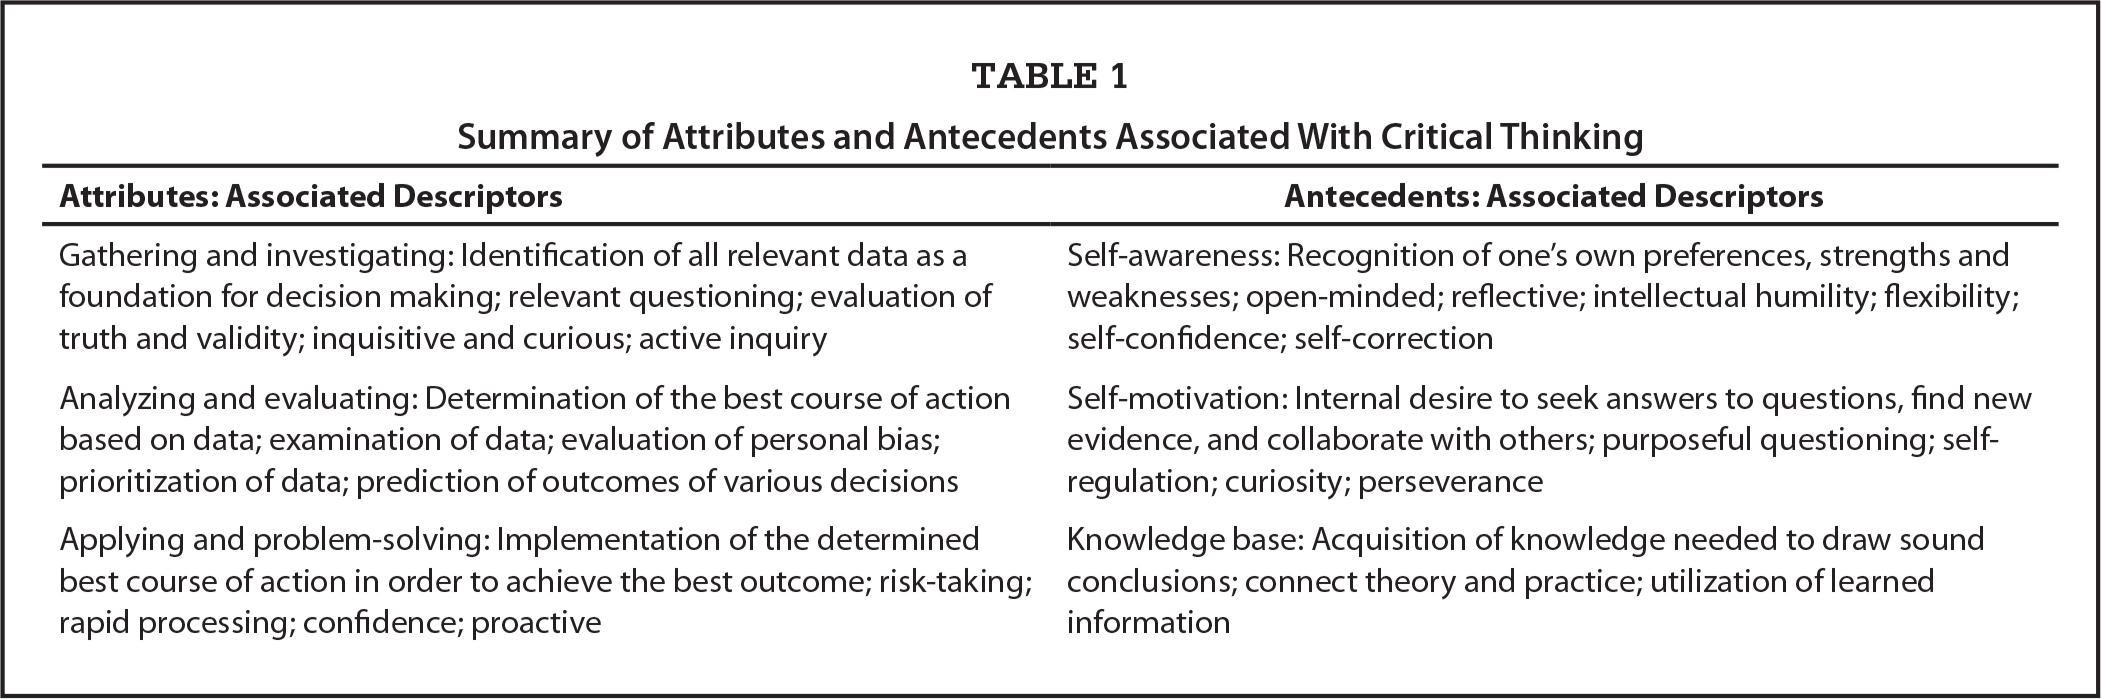 Summary of Attributes and Antecedents Associated With Critical Thinking